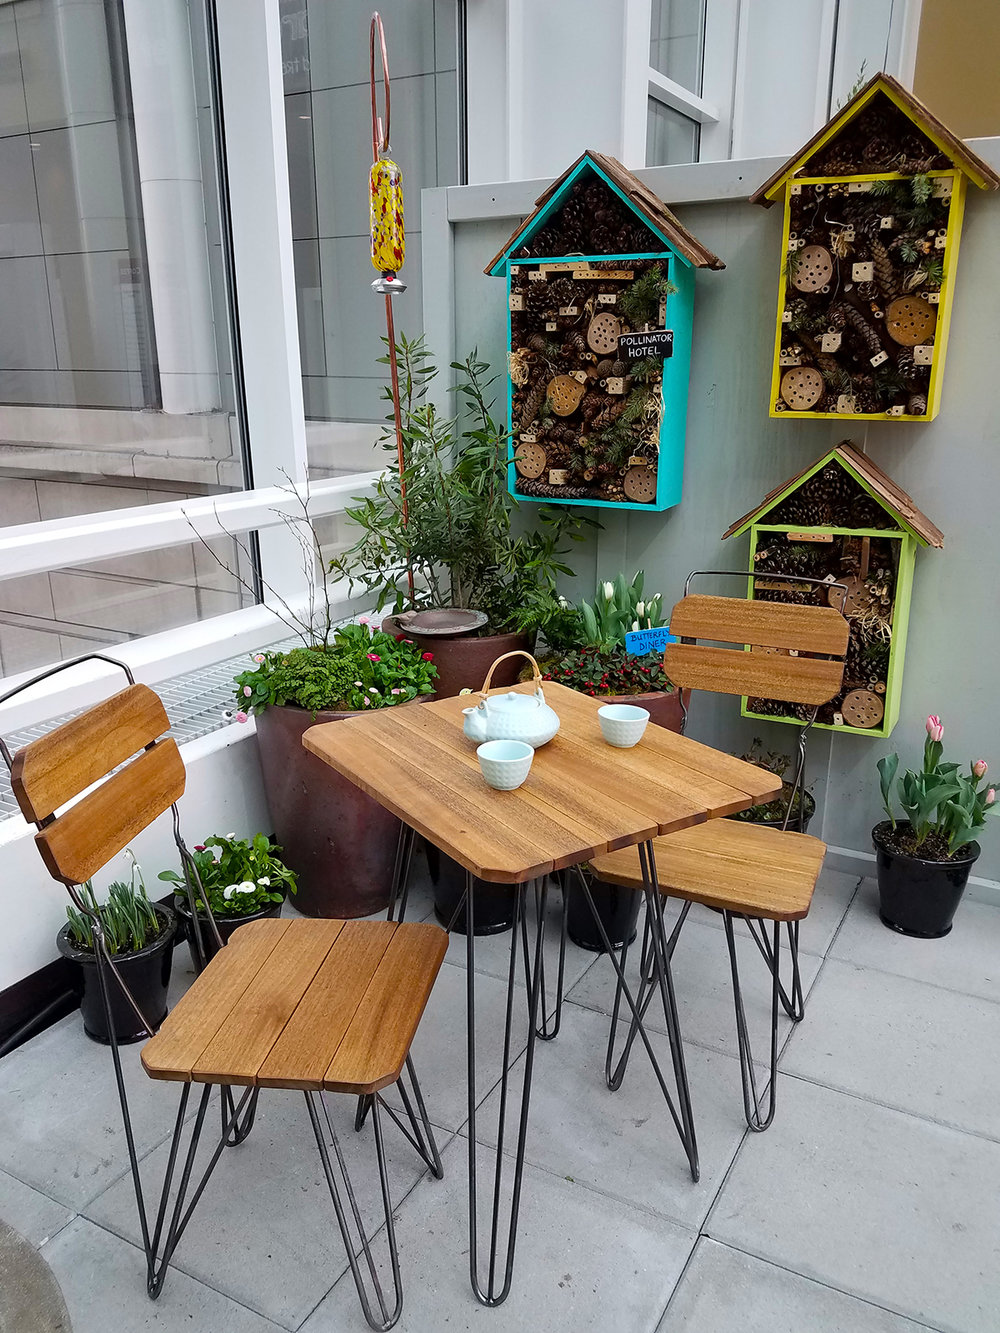 Reclaimed wood bistro set by James Taylor @  Ballard Reuse .  Pollinator Hotels by  IslandWood Learning Center .